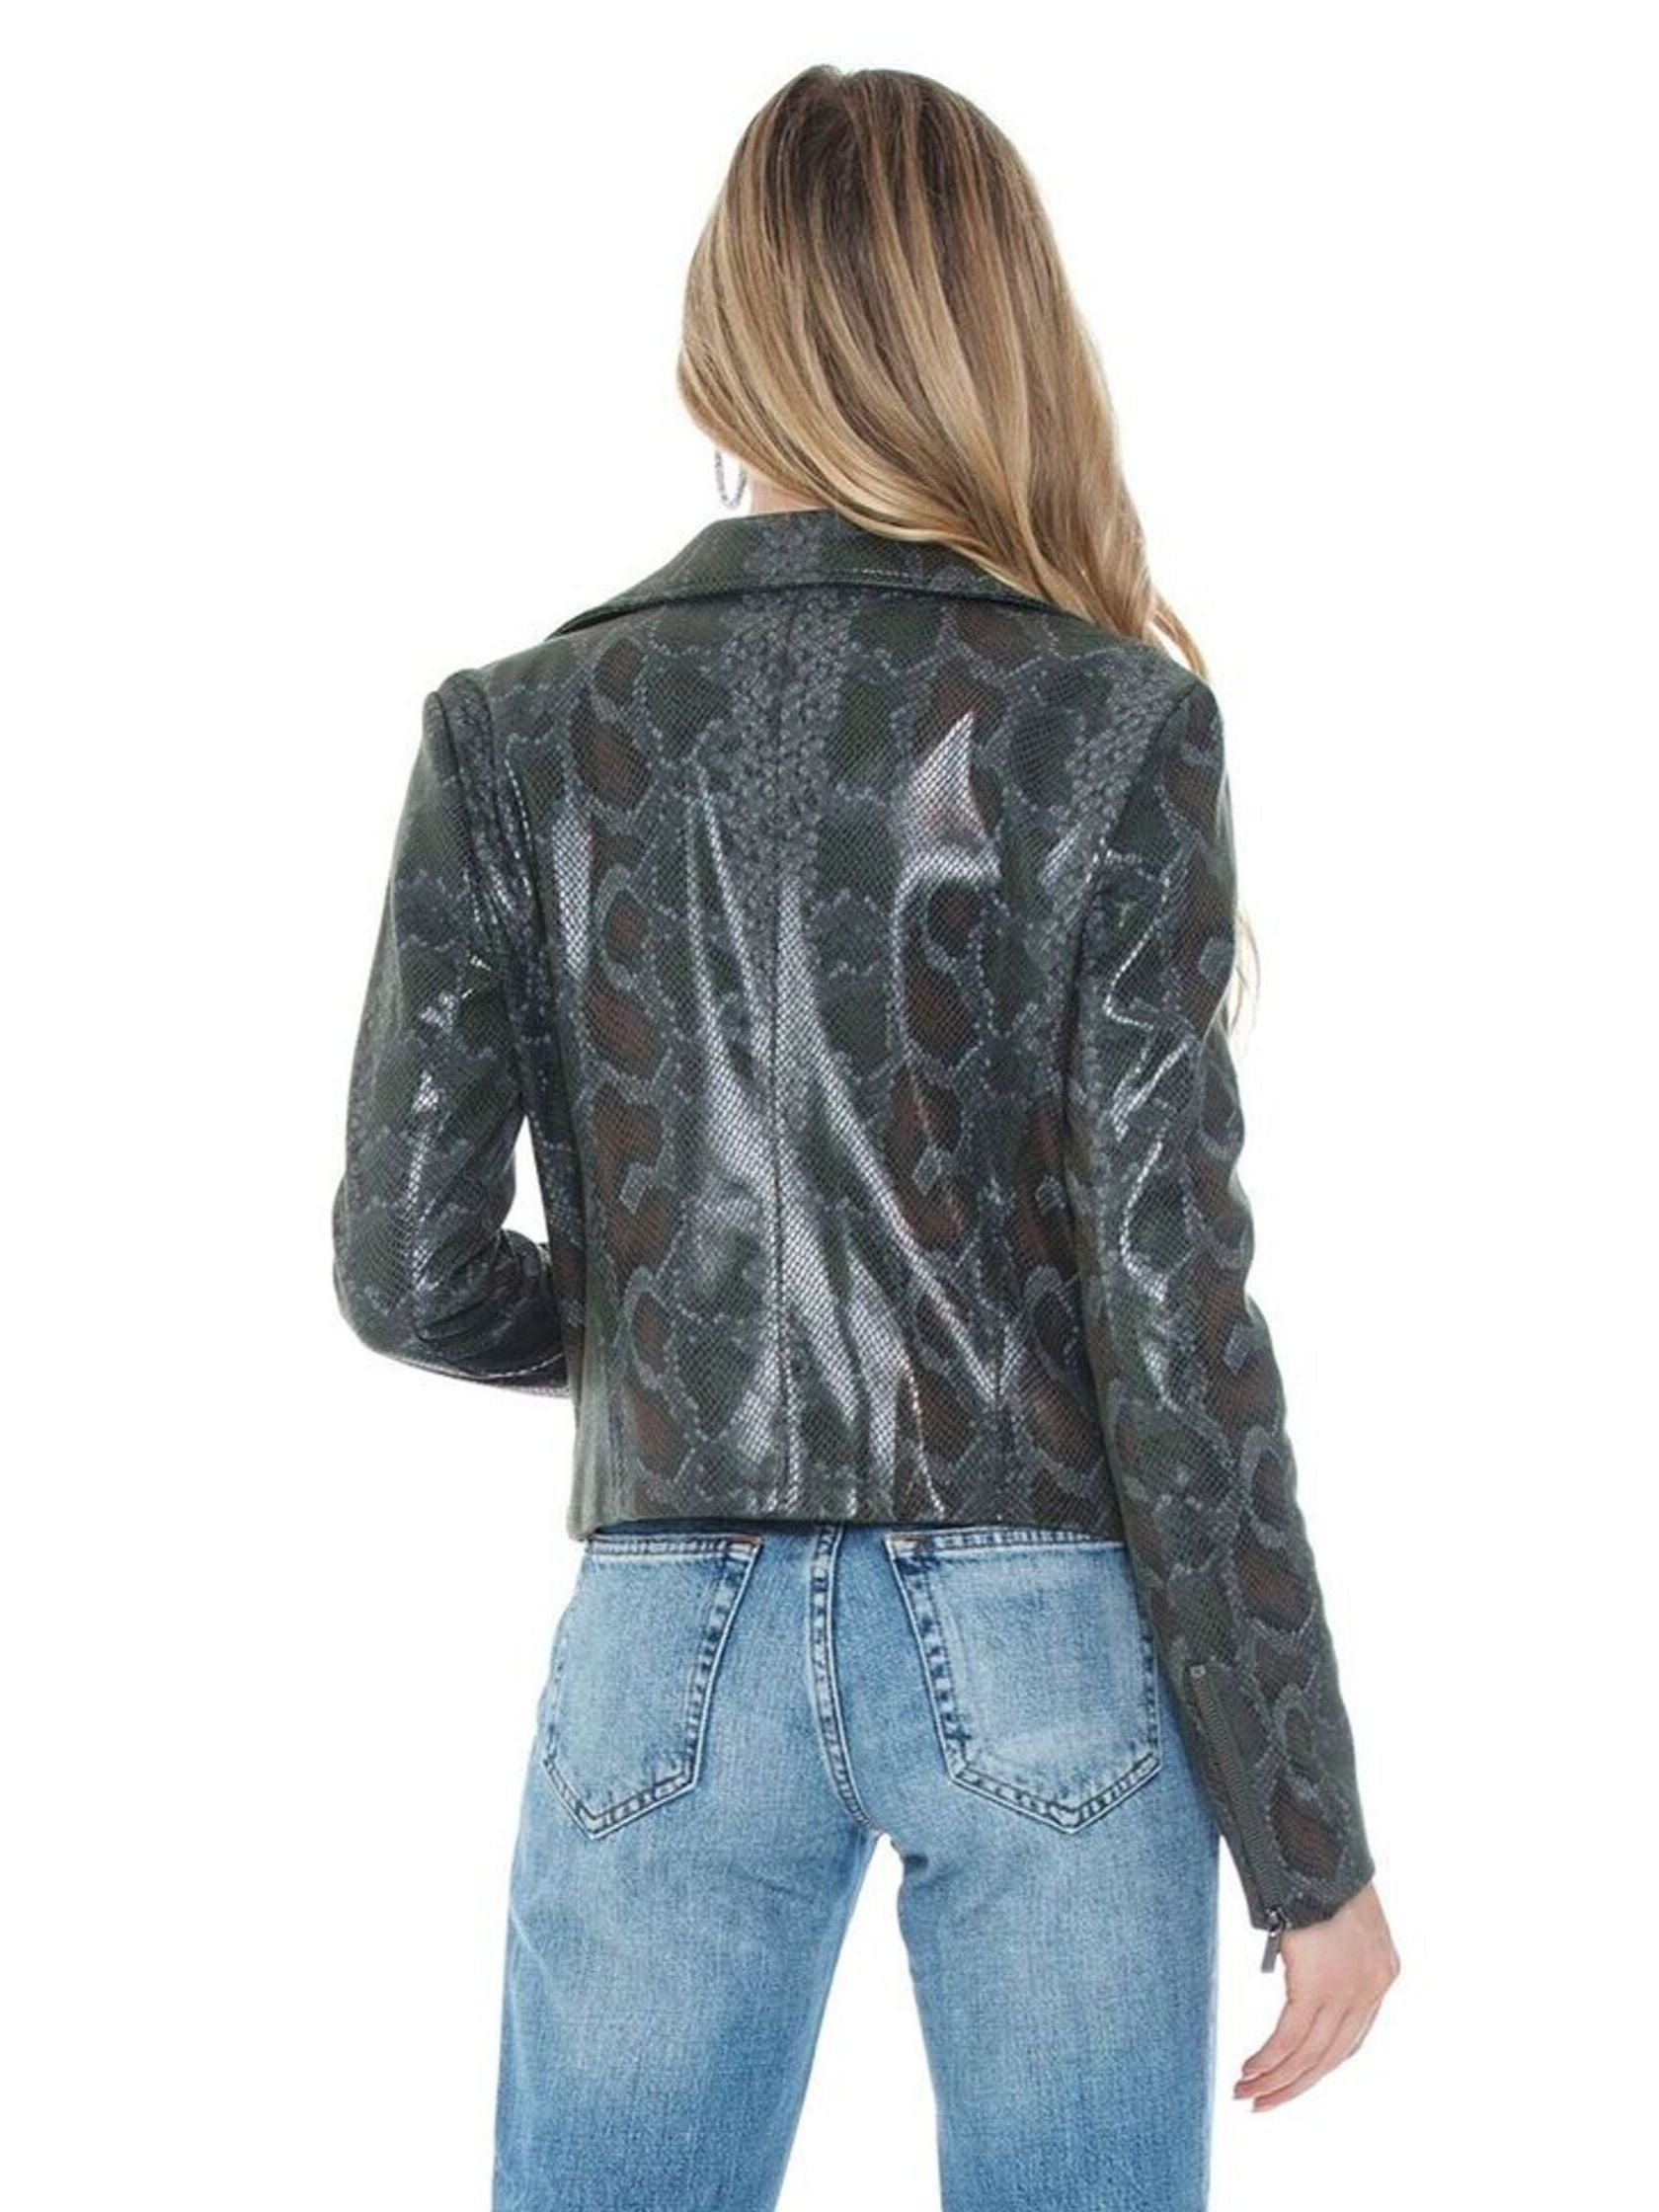 Women outfit in a jacket rental from 1.STATE called Faux Snakeskin Moto Jacket